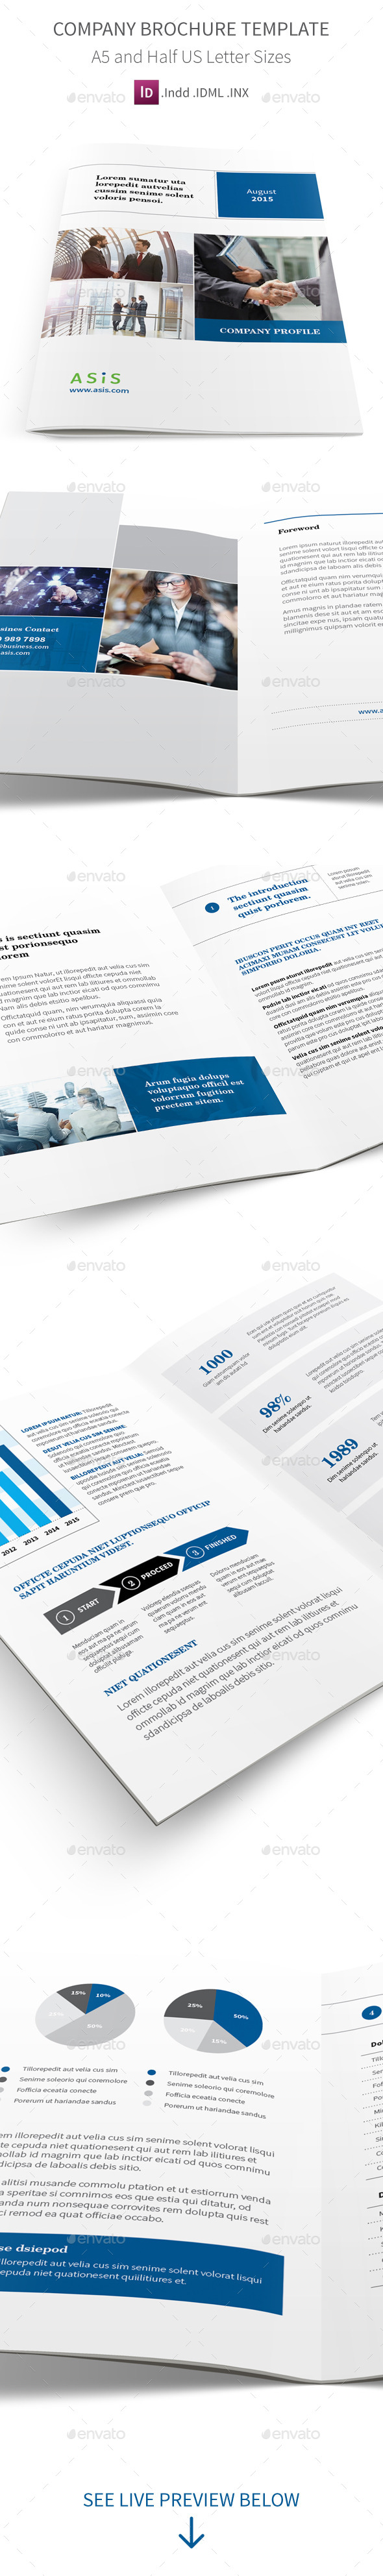 Company Profile Brochure A5 Half Letter Sizes